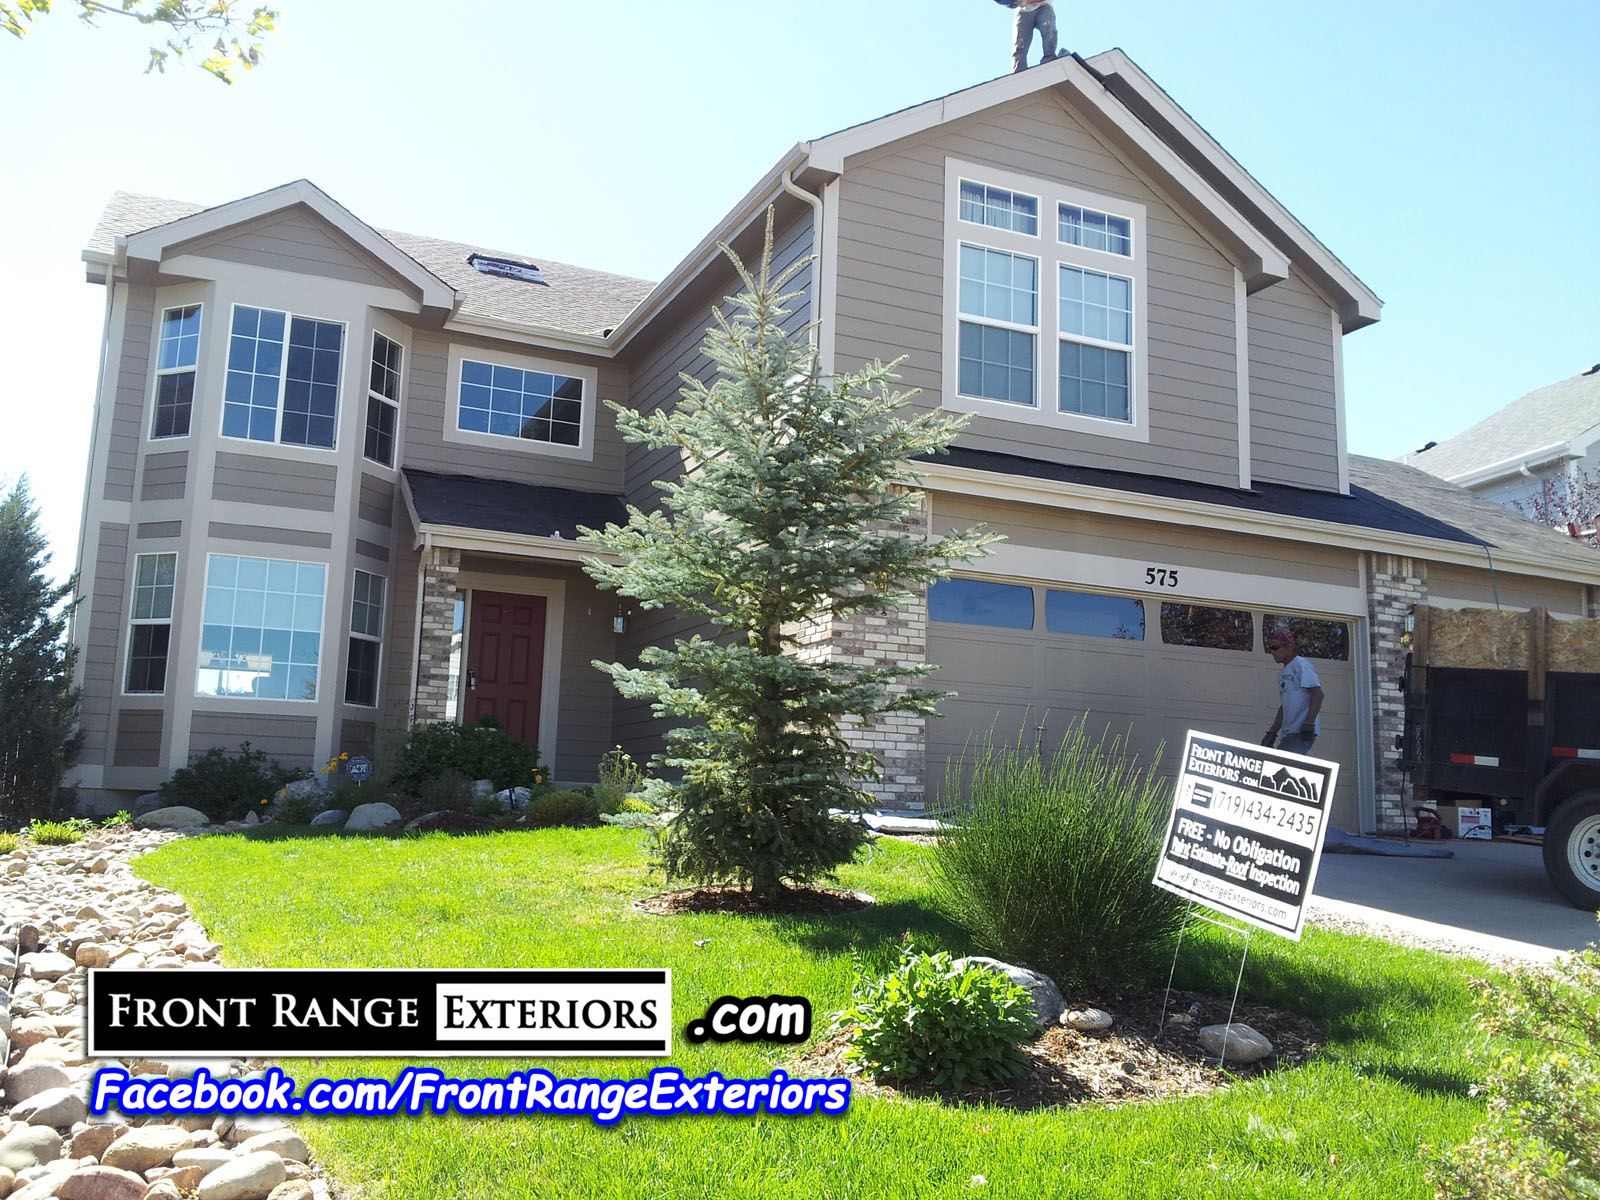 Hail Damage Roofing Colorado Springs Front Range